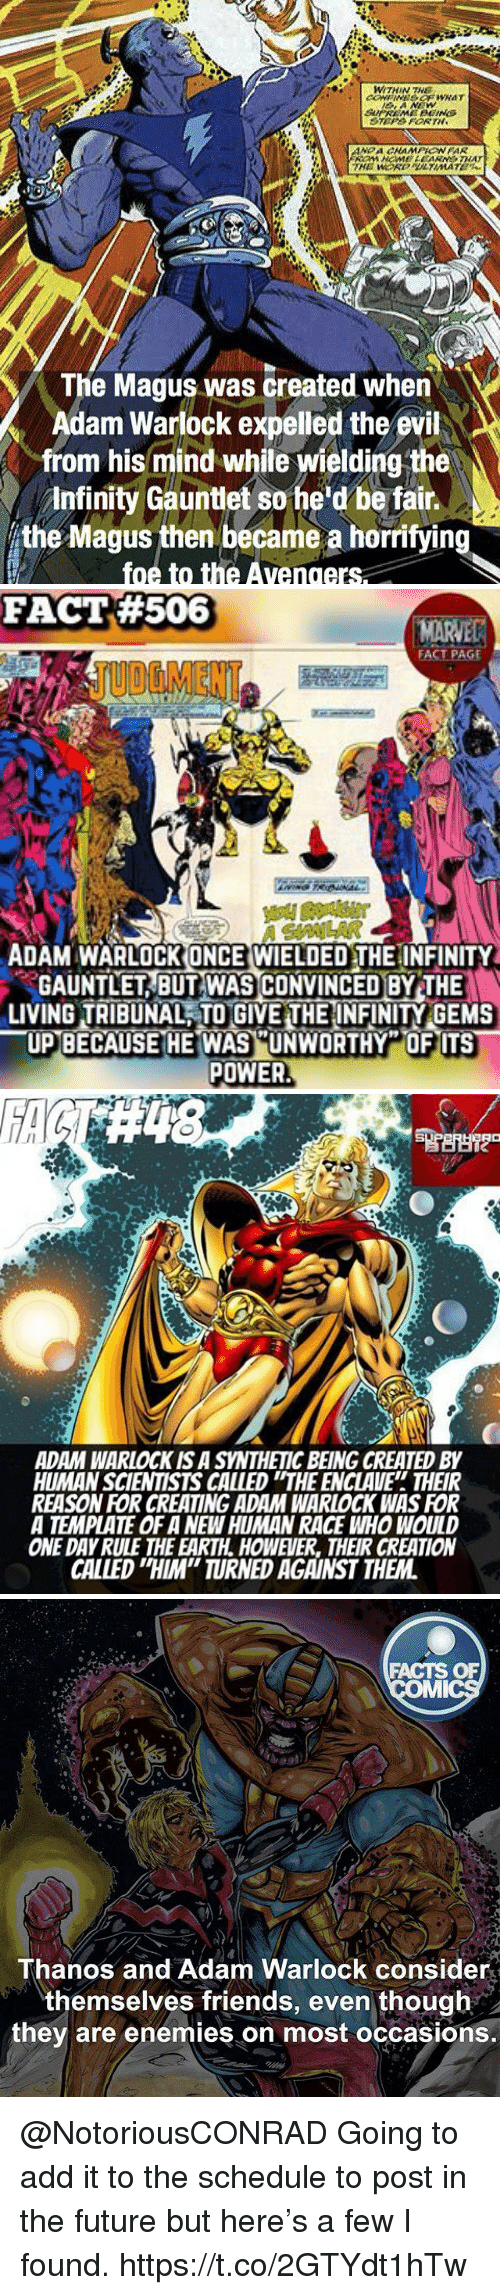 "Facts, Friends, and Future: WITHIN THE  The Magus was created when  Adam Warlock expelled the evil  from his mind while wielding the  Infinity Gauntlet so he d be fain  the Magus then became a horrifying  foe to the Avengers   FACT #506  FACT PAGE  JUOGMENT  ADAM WARLOCKONCE WIELDED THE INFINITY  GAUNTLET BUT WAS CONVINCED BY THE  LIVING TRIBUNAL TO GIVE THE INFINITY GEMS  POWER   ADAM WARLOCK IS A SYNTHETIC BEING CREATED BY  HUMAN SCIENTISTS CALLED ""THE ENCLAVE THEIR  REASON FOR CREATING ADAM WARLOCK WAS FOR  A TEMPLATE OF A NEWHUMAN RACE WHO WOULD  ONE DAY RULE THE EARTH. HOWEVER, THEIR CREATION  CALLED ""HIM"" TURNED AGAINST THEM   FACTS OF  Thanos and Adam Warlock consider  themselves friends, even though  they are enemies on most occasions. @NotoriousCONRAD Going to add it to the schedule to post in the future but here's a few I found. https://t.co/2GTYdt1hTw"